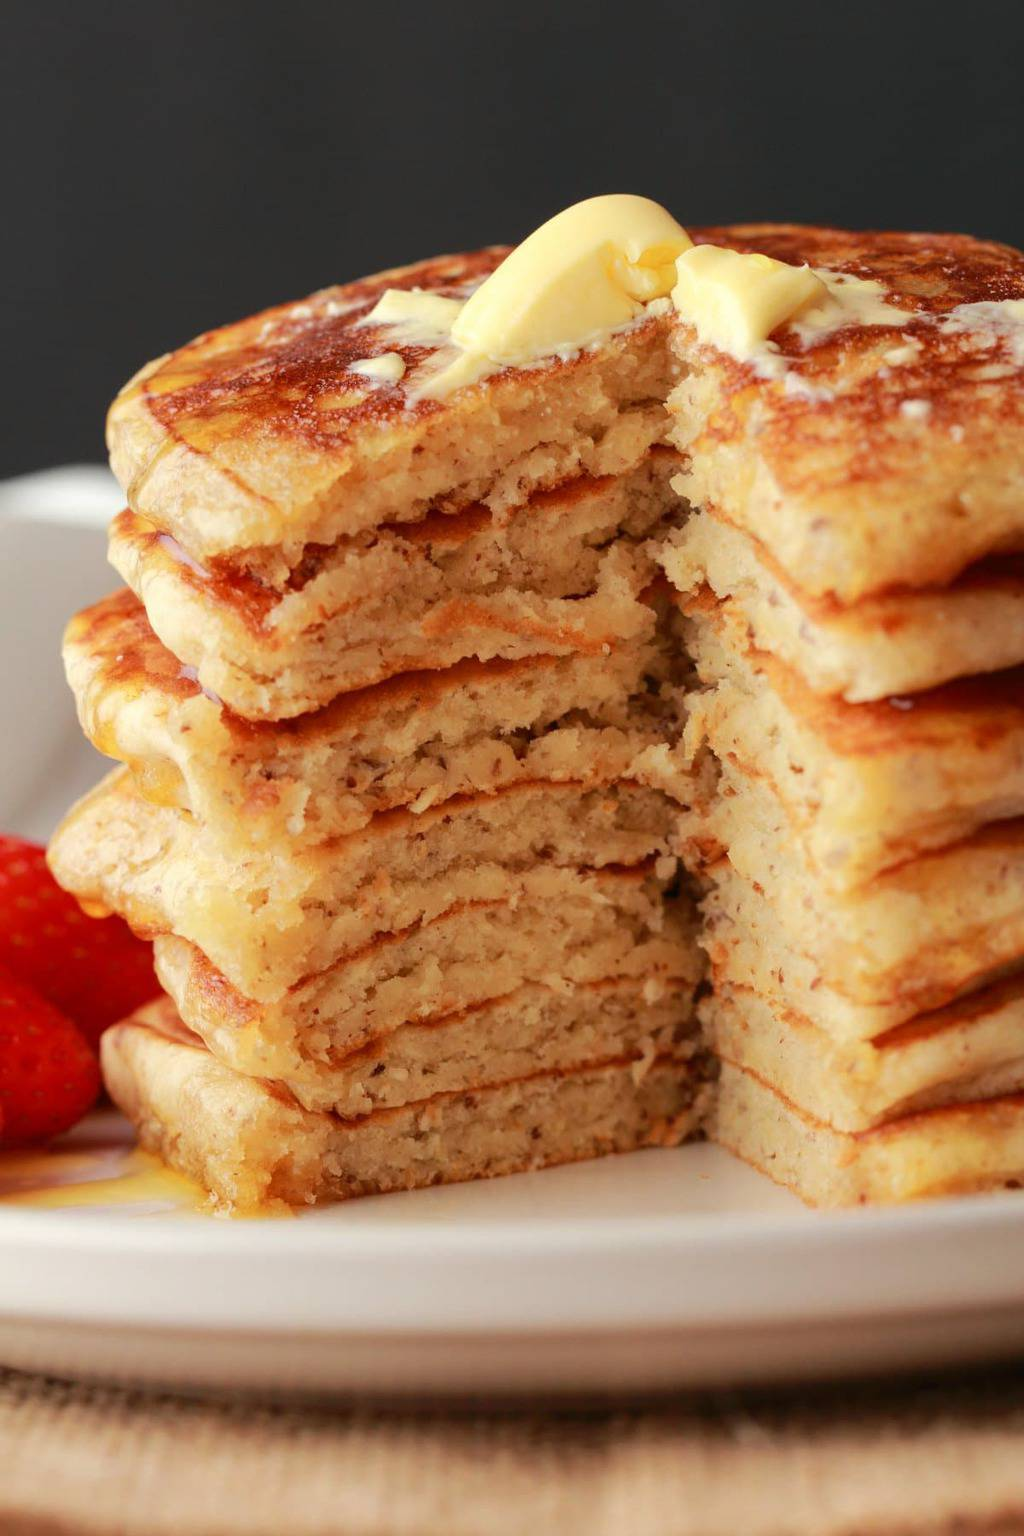 Vegan pancakes in a stack with a triangle shape cut out of the stack.